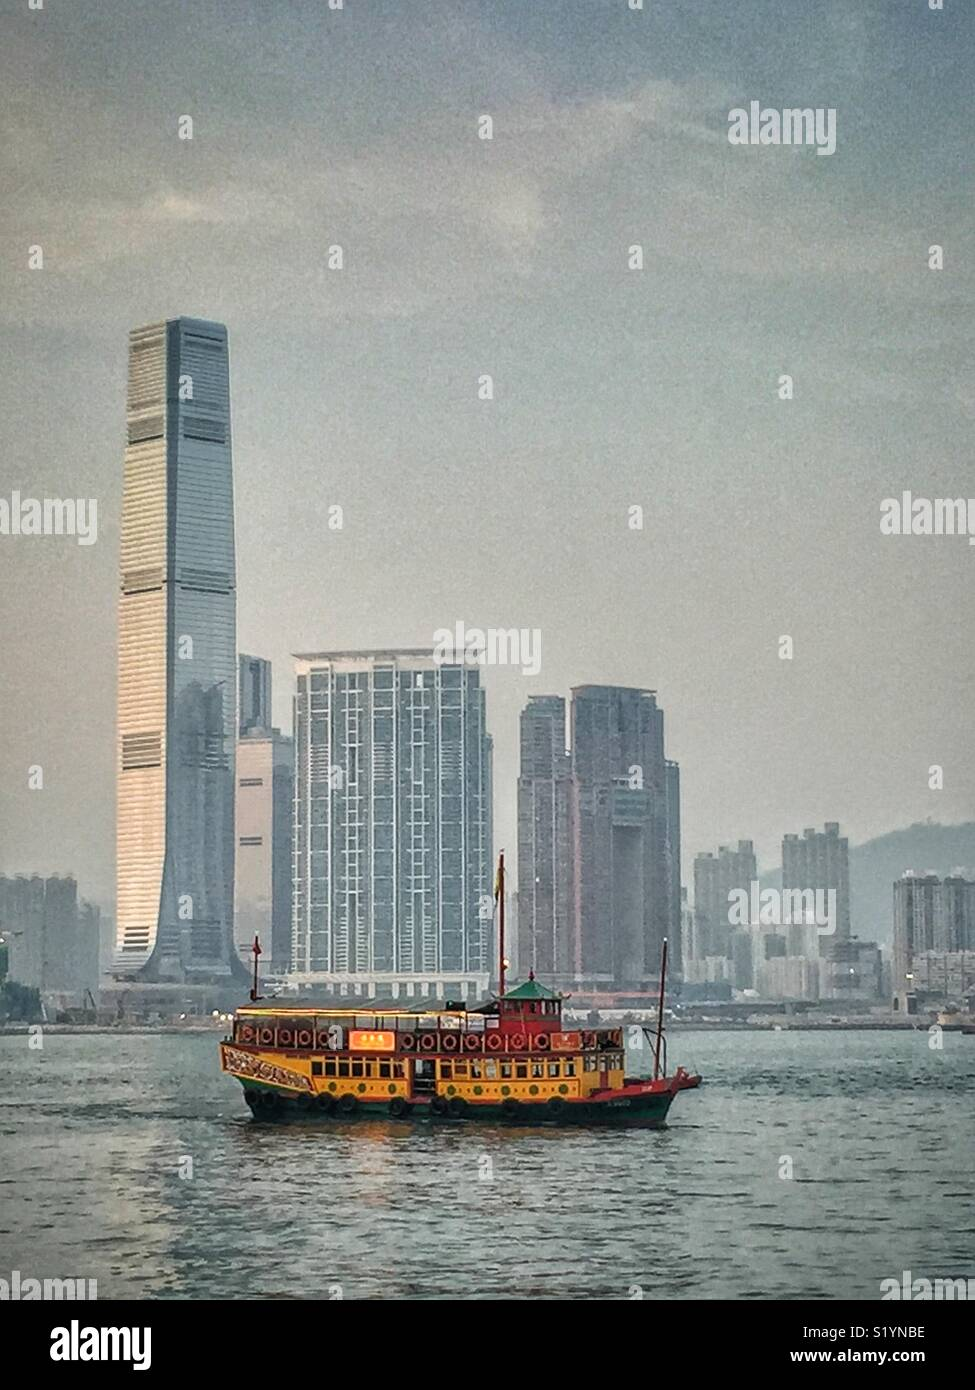 The 'Wing On Travel', a double decker Chinese junk, carrying tourists on a sightseeing cruise on Victoria Harbour at twilight, in front of the ICC, Hong Kong's tallest skyscraper, in West Kowloon - Stock Image